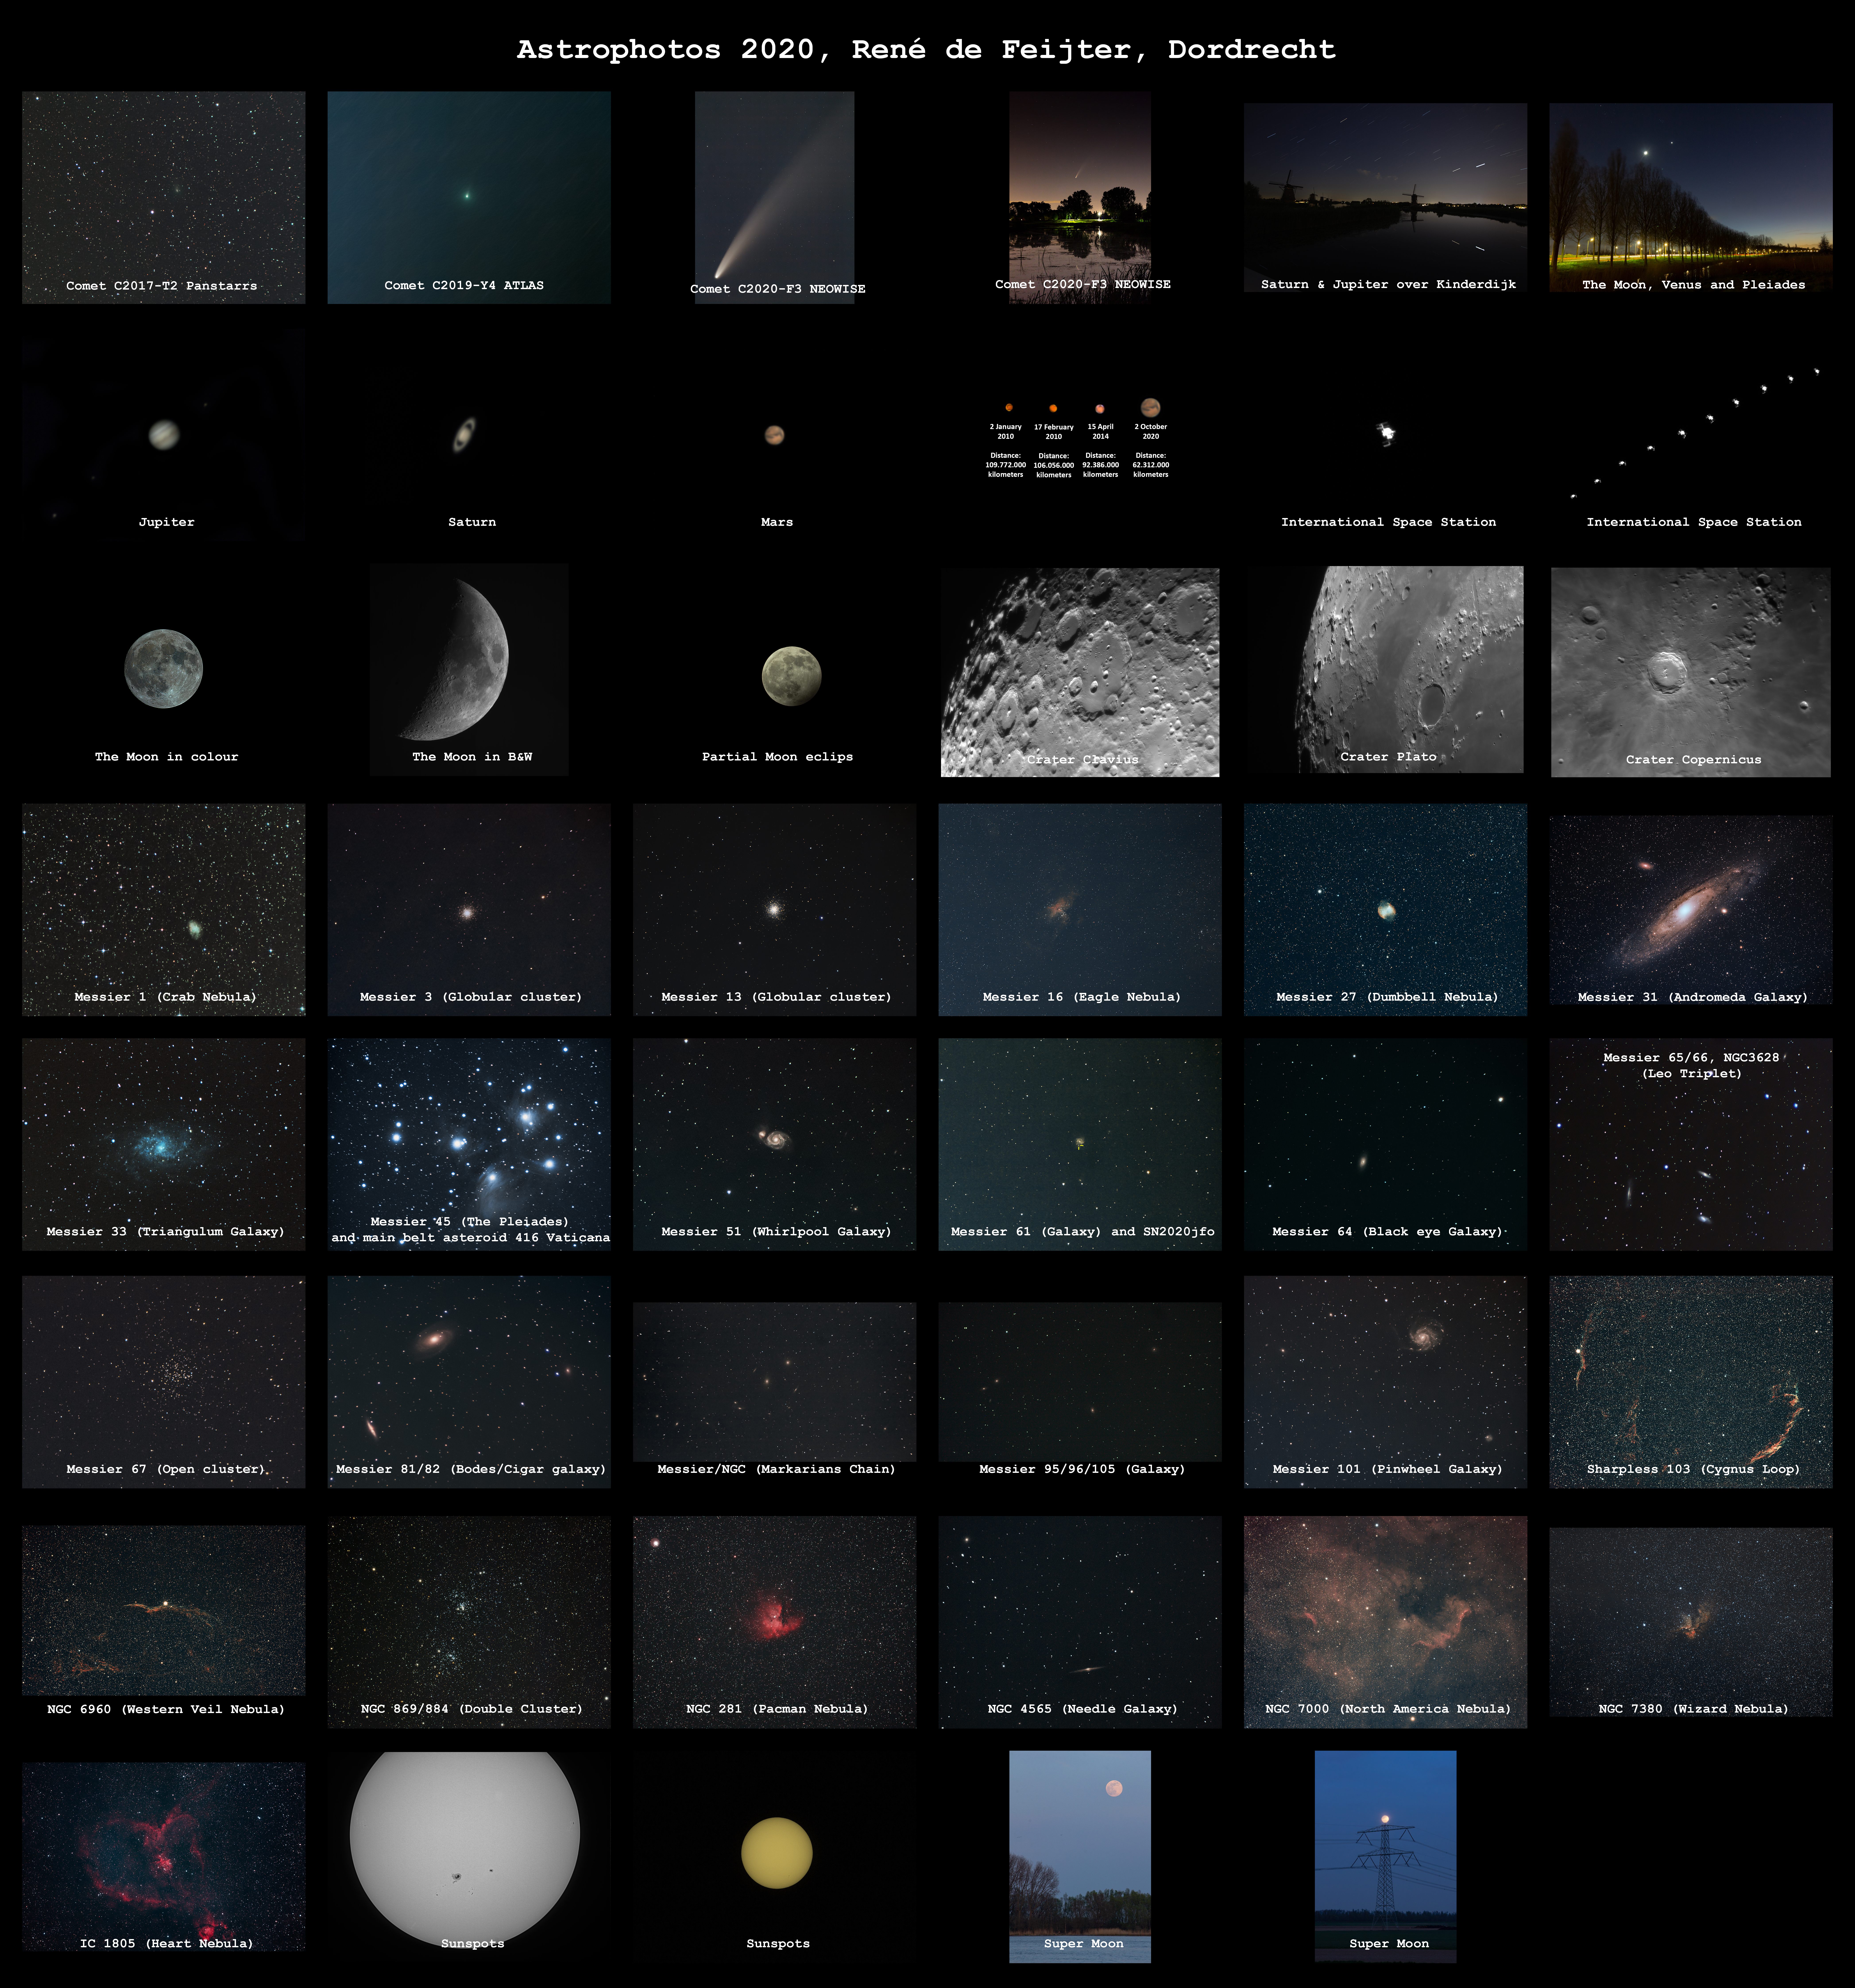 Astrophoto overview 2020